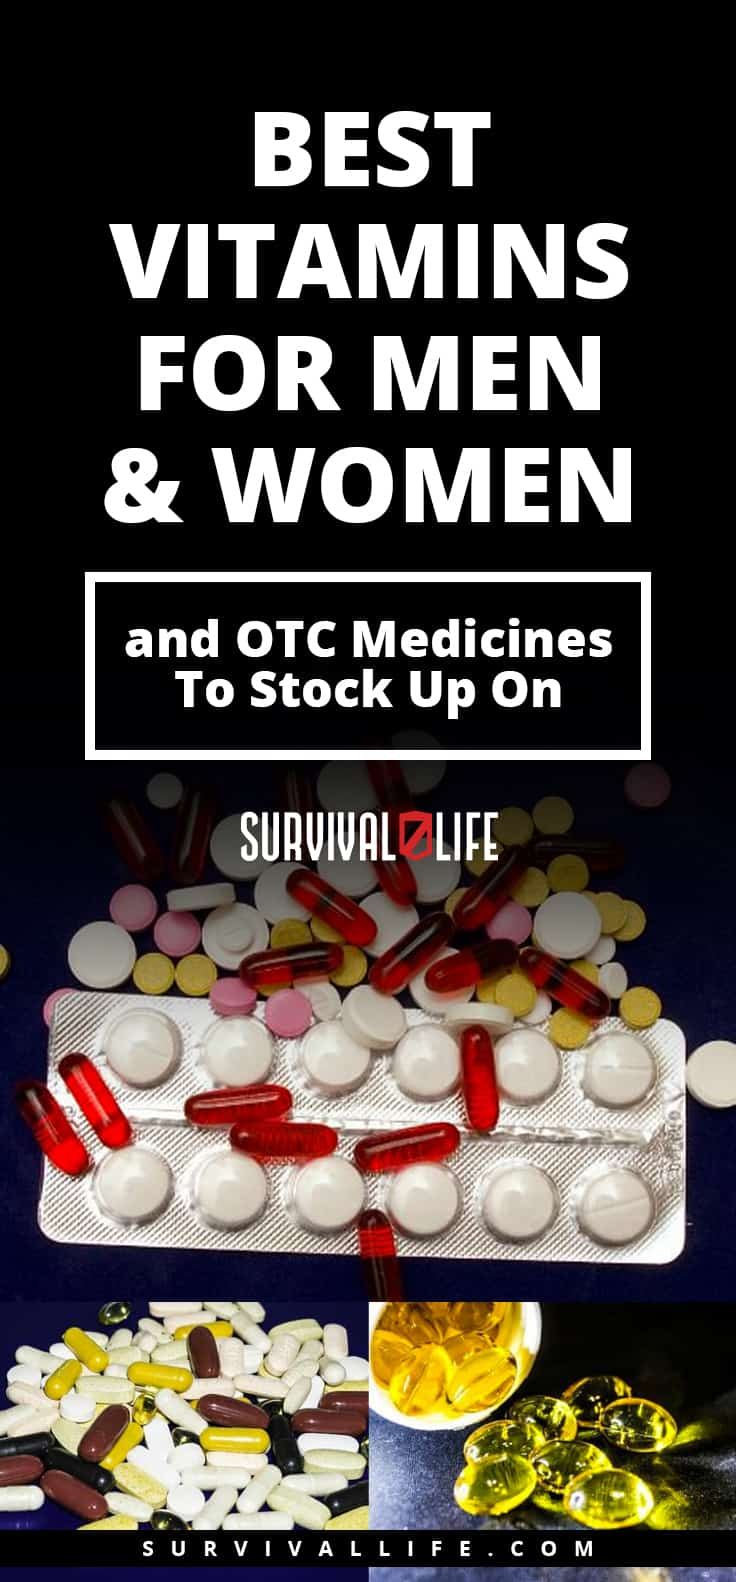 Best Vitamins For Men & Women And OTC Medicines To Stock Up On | https://survivallife.com/best-vitamins-for-men/